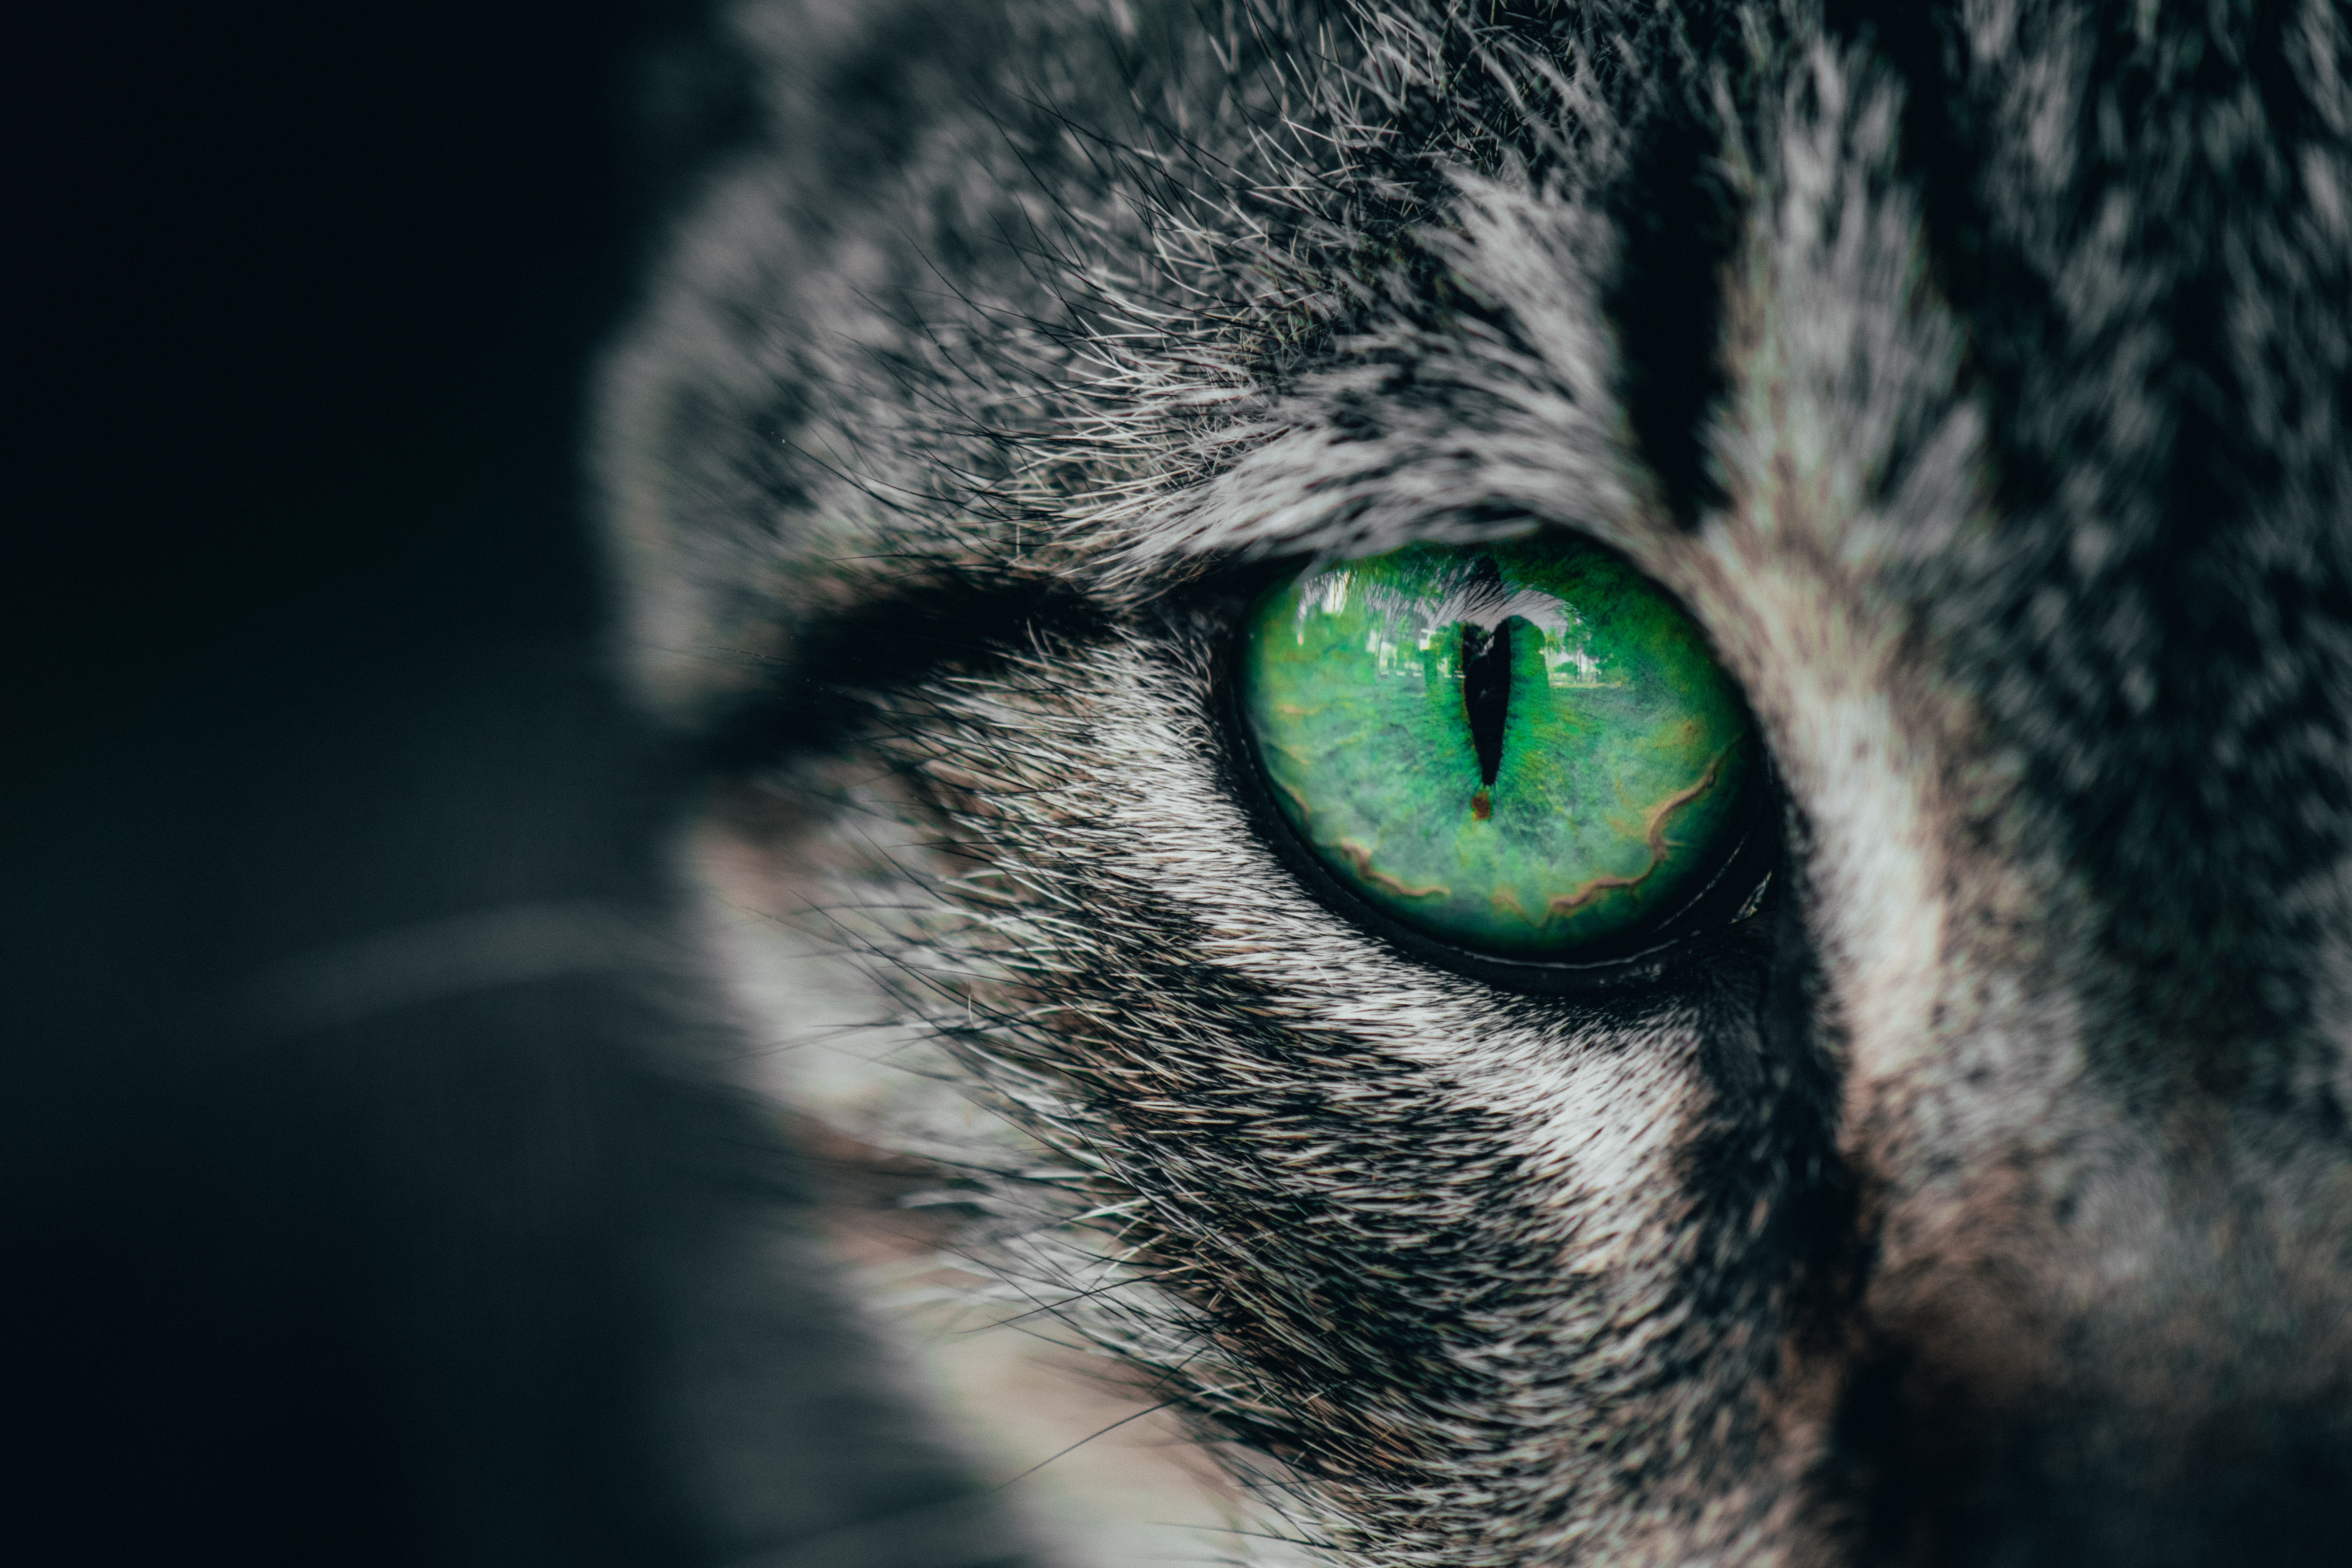 134122 download wallpaper Macro, Cat, Close-Up, Eye, Pupil screensavers and pictures for free